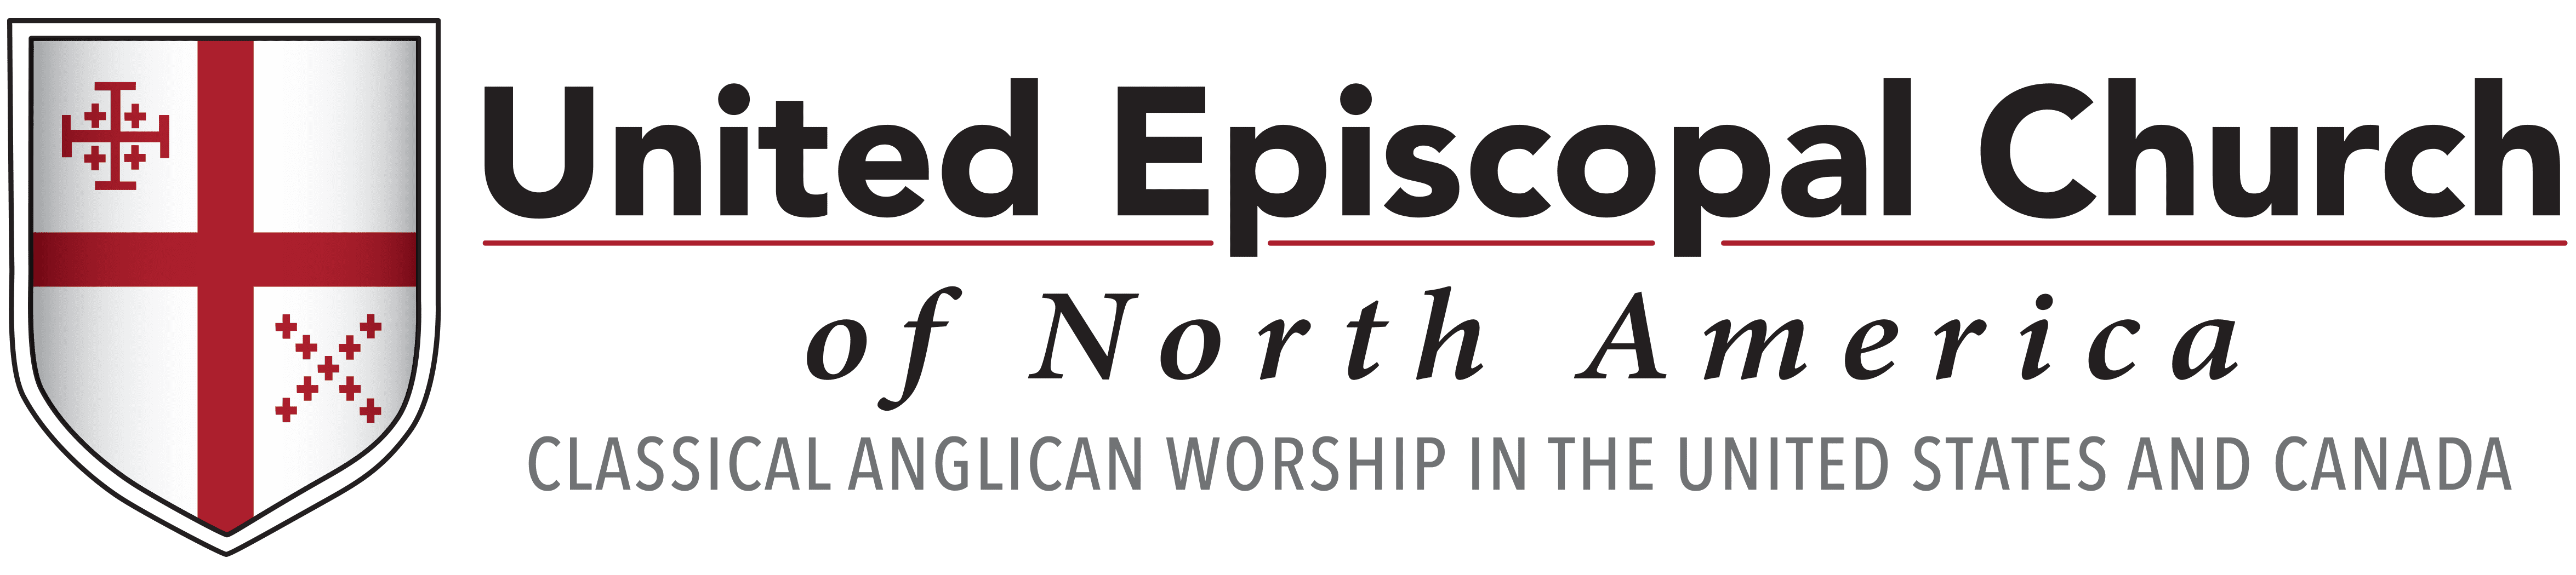 United Episcopal Church of North America